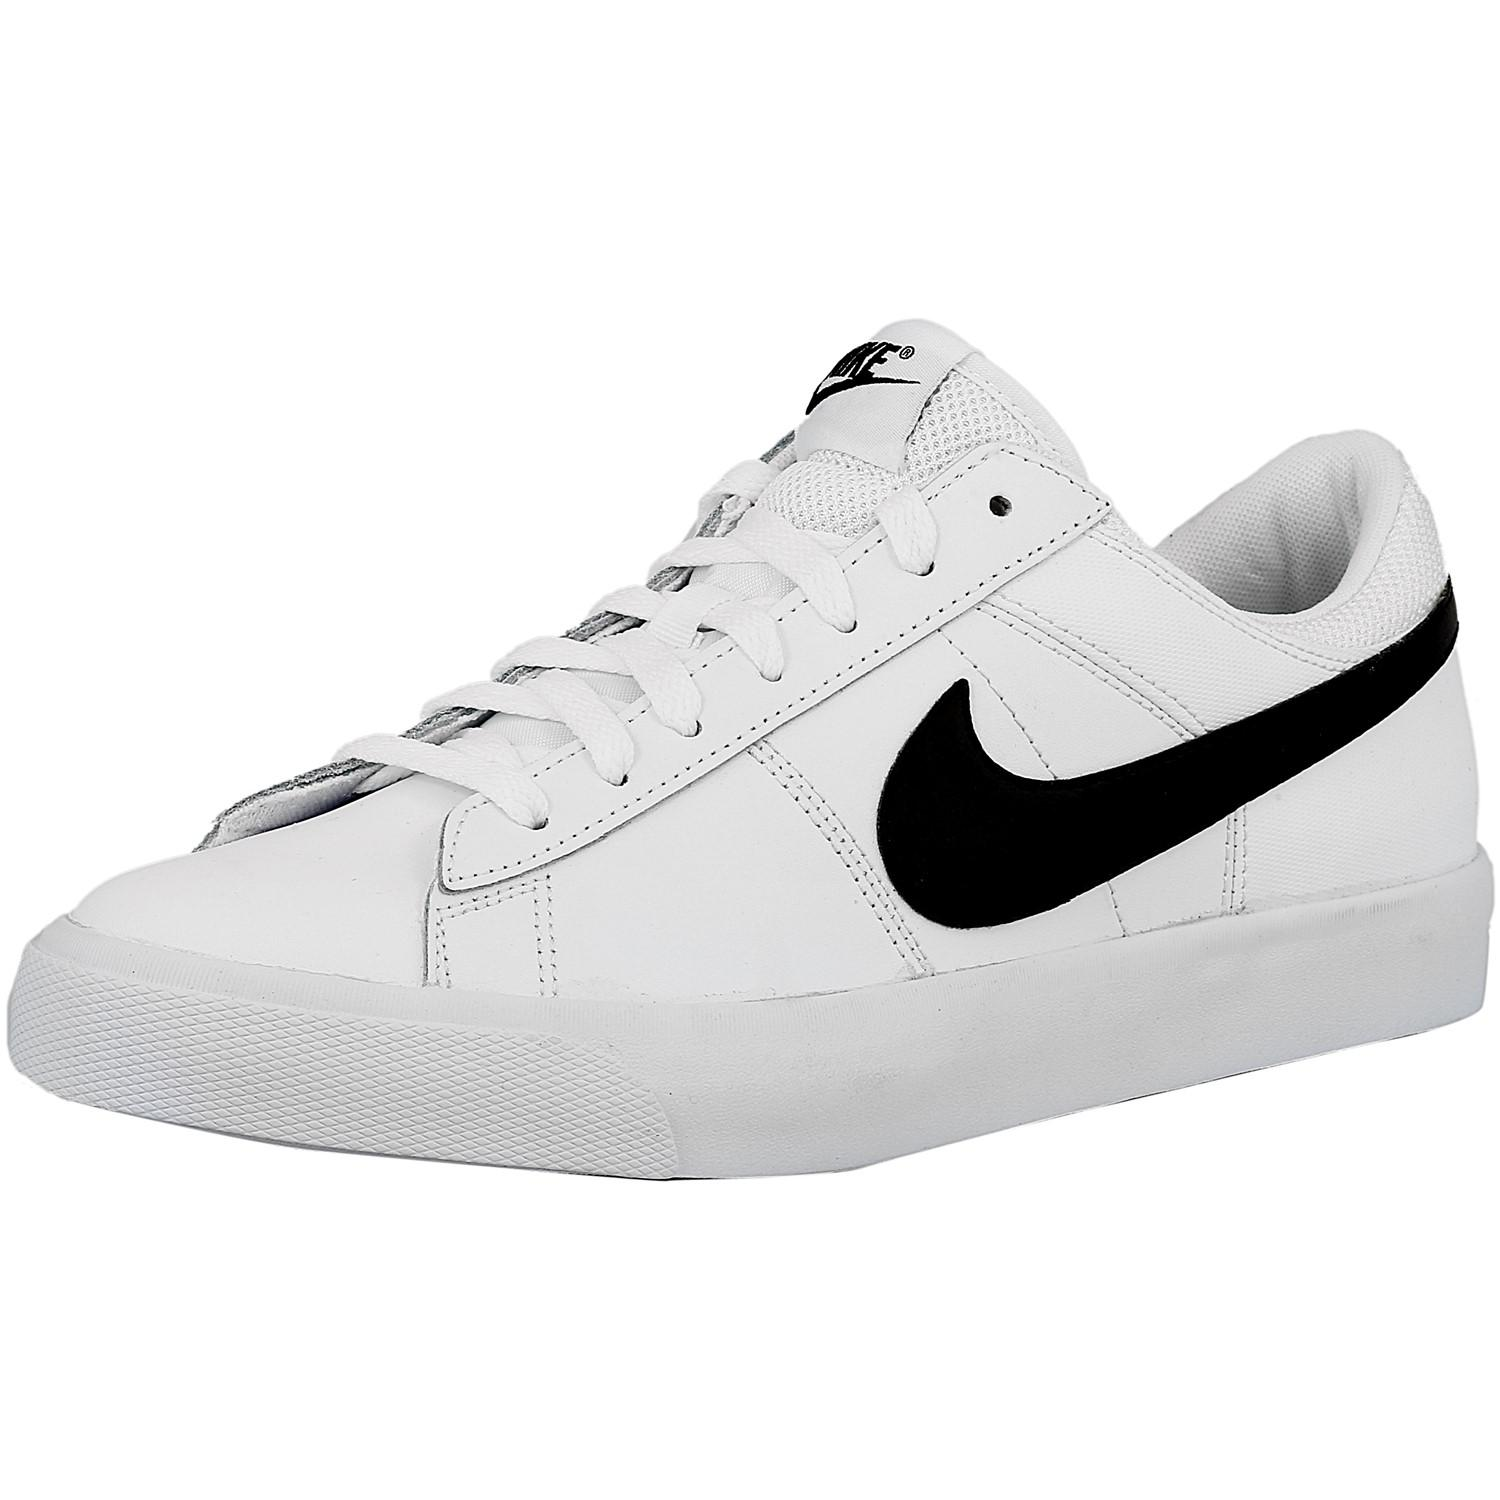 the best attitude 7bd4d 32dbd nike-White-Black-Black-White-Match-Supreme-White-Black-black-white-Ankle- high-Leather-Tennis-Shoe.jpeg